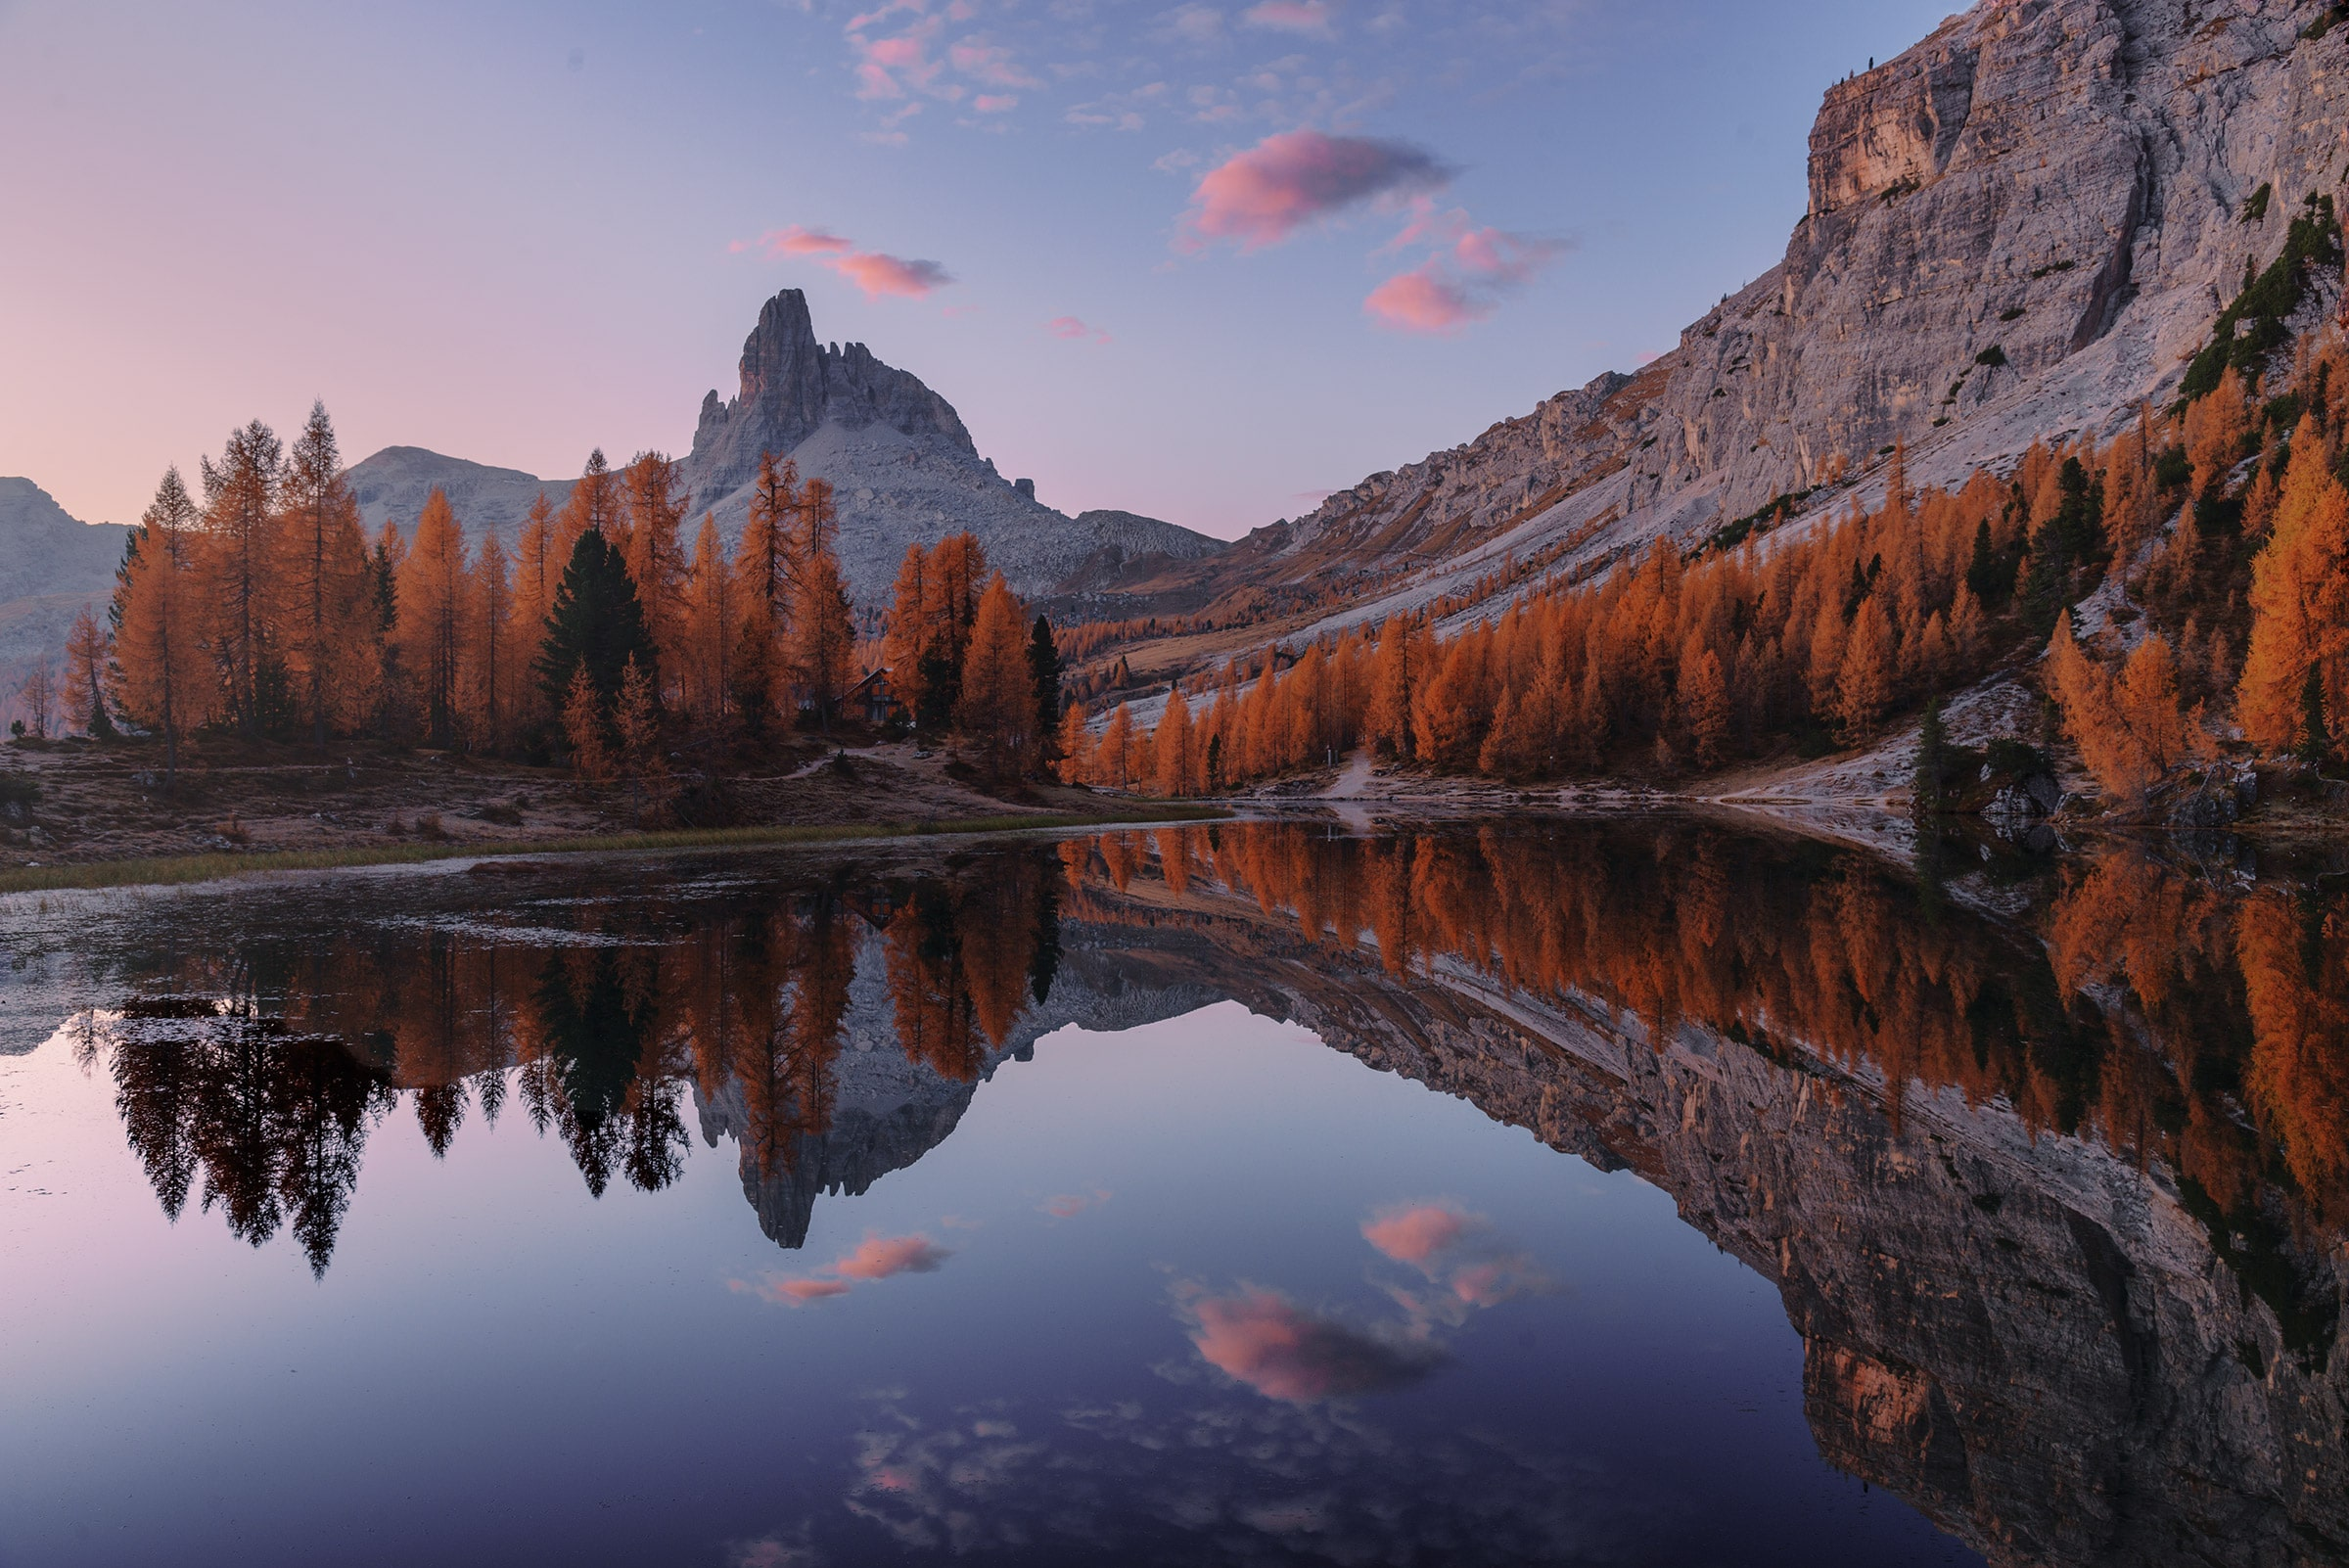 Twilight reflection in the Dolomites in autumn